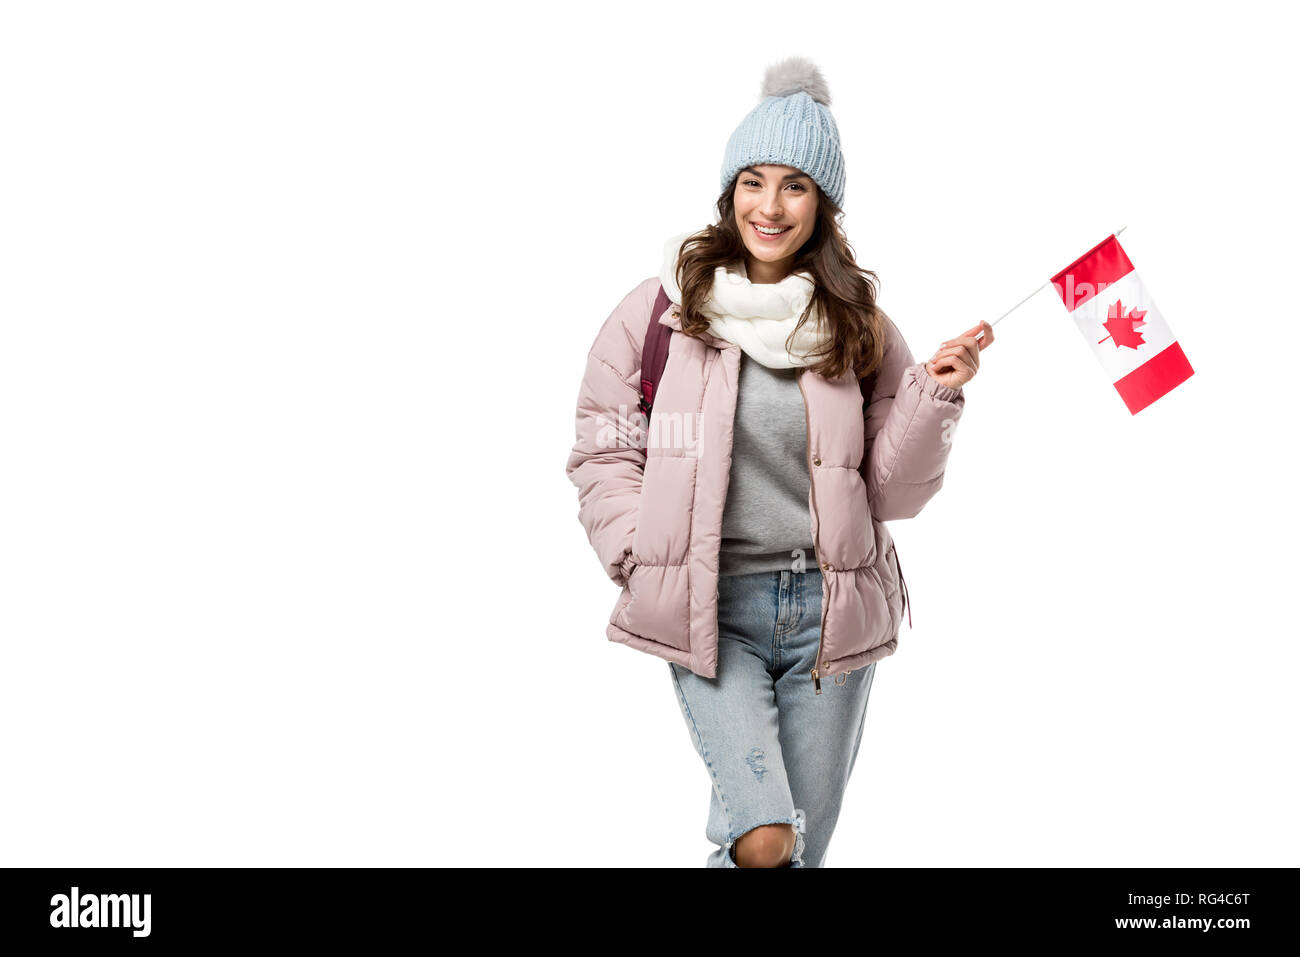 smiling female student in winter clothes holding canadian flag and looking at camera isolated on white - Stock Image